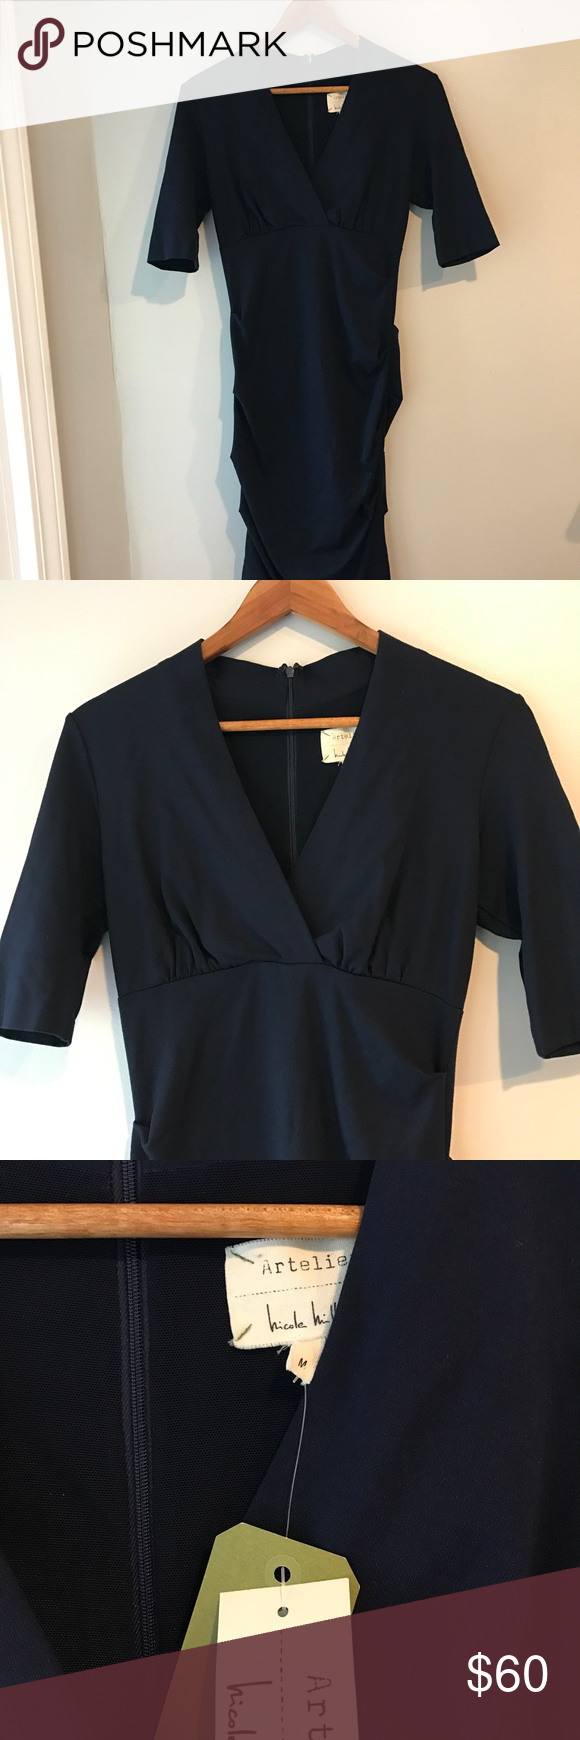 Nicole Miller Artelier Navy Dress Sz M (US 8-10) Sheath silhouette. Solid colorway on a stretch-ponte fabrication. Crossover V-neckline. Three-quarter sleeves. Empire waist. Ruching throughout for a flattering shape. Concealed hook and zipper closure at back. Unlined. Straight hemline. 71% polyester, 24% rayon, 5% elastane. Hand wash cold, lay flat to dry. Nicole Miller Dresses